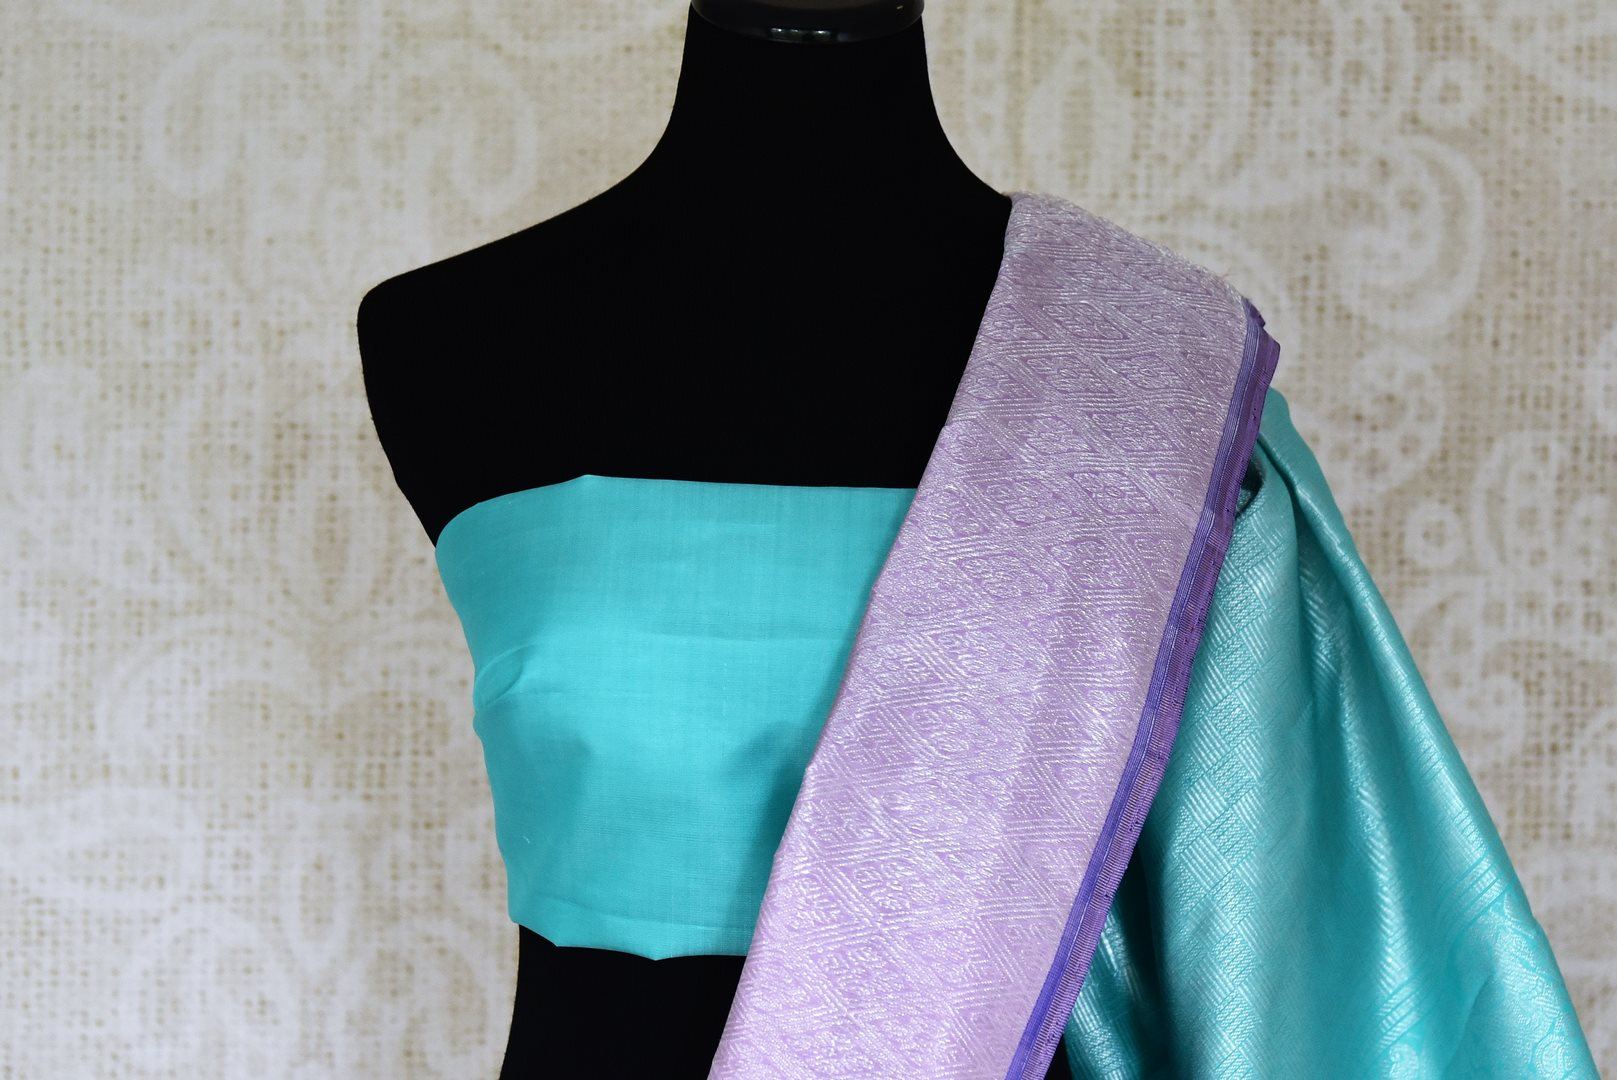 Buy lavender color silver zari work Kanjivaram sari online in USA. Shop beautiful Kanchipuram silk sarees, designer saris, handwoven silk sarees for special occasions from Pure Elegance Indian fashion store in USA.-blouse pallu